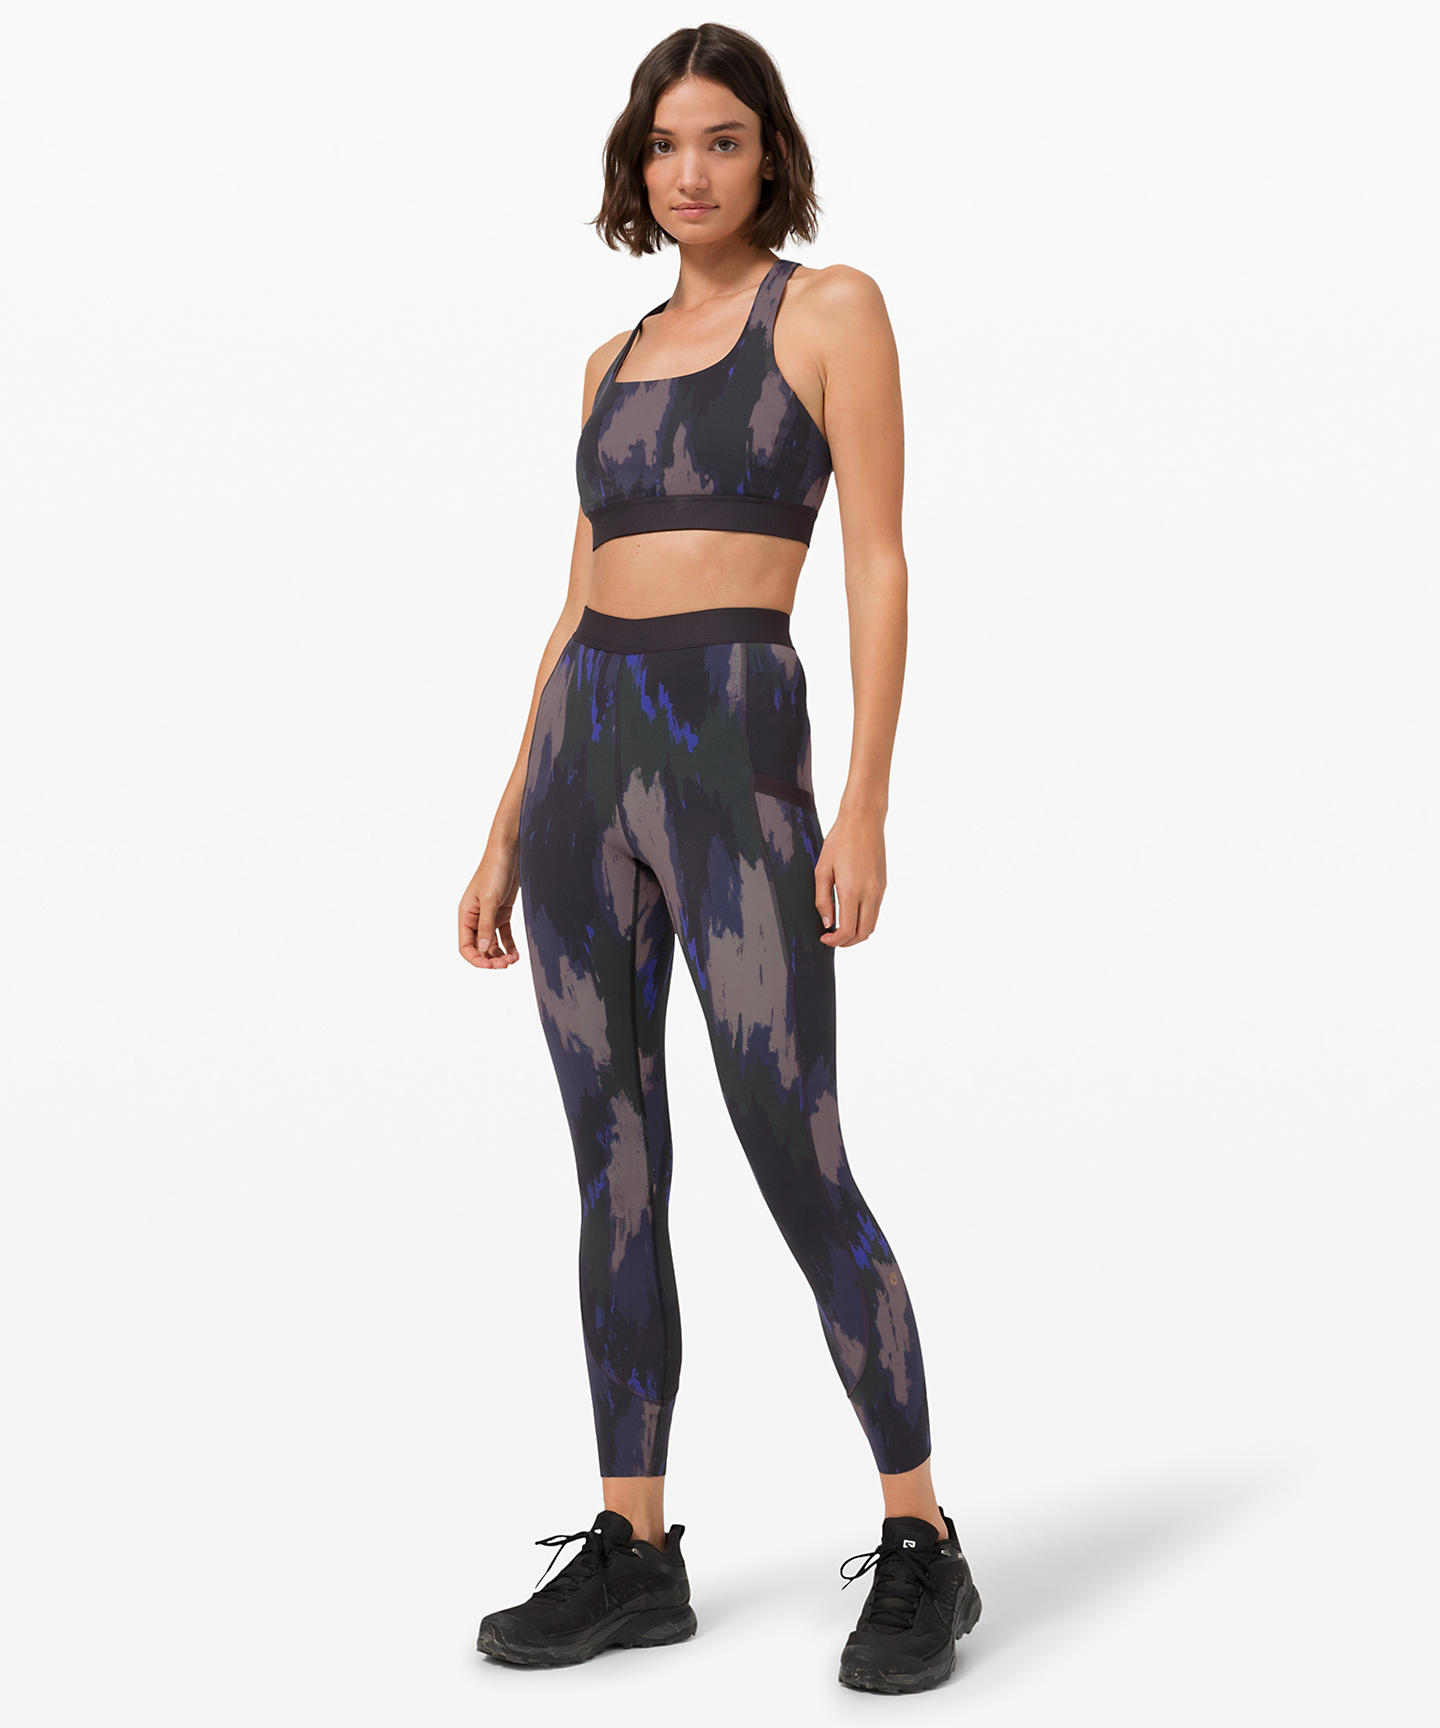 "Take The Moment Tight 25"" lululemon x Robert Geller"